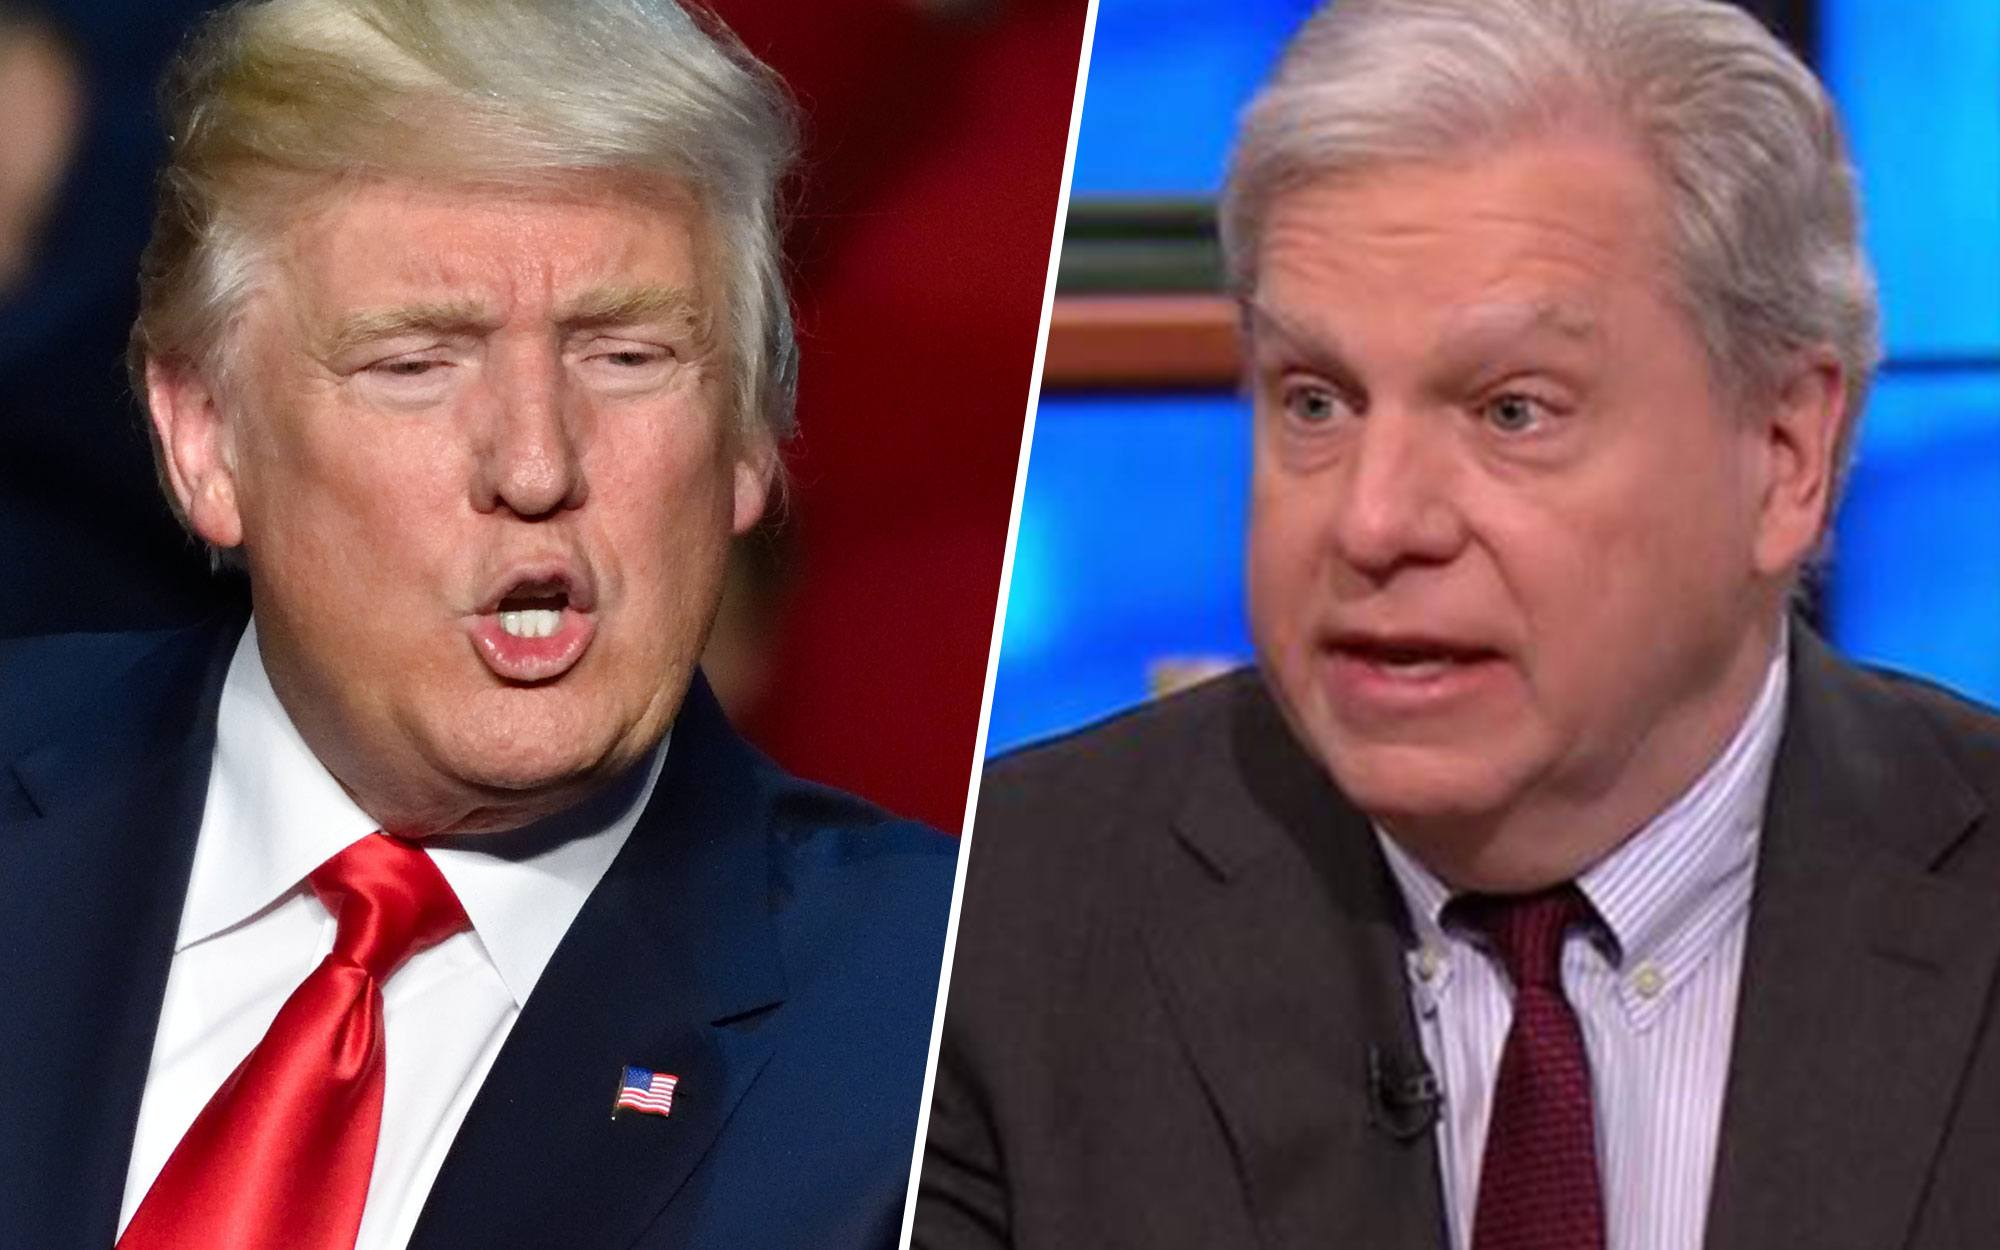 CNN Analyst Admits 'Maybe I Made Up the Convo' Between Two Senators Shocked at Trump's Action